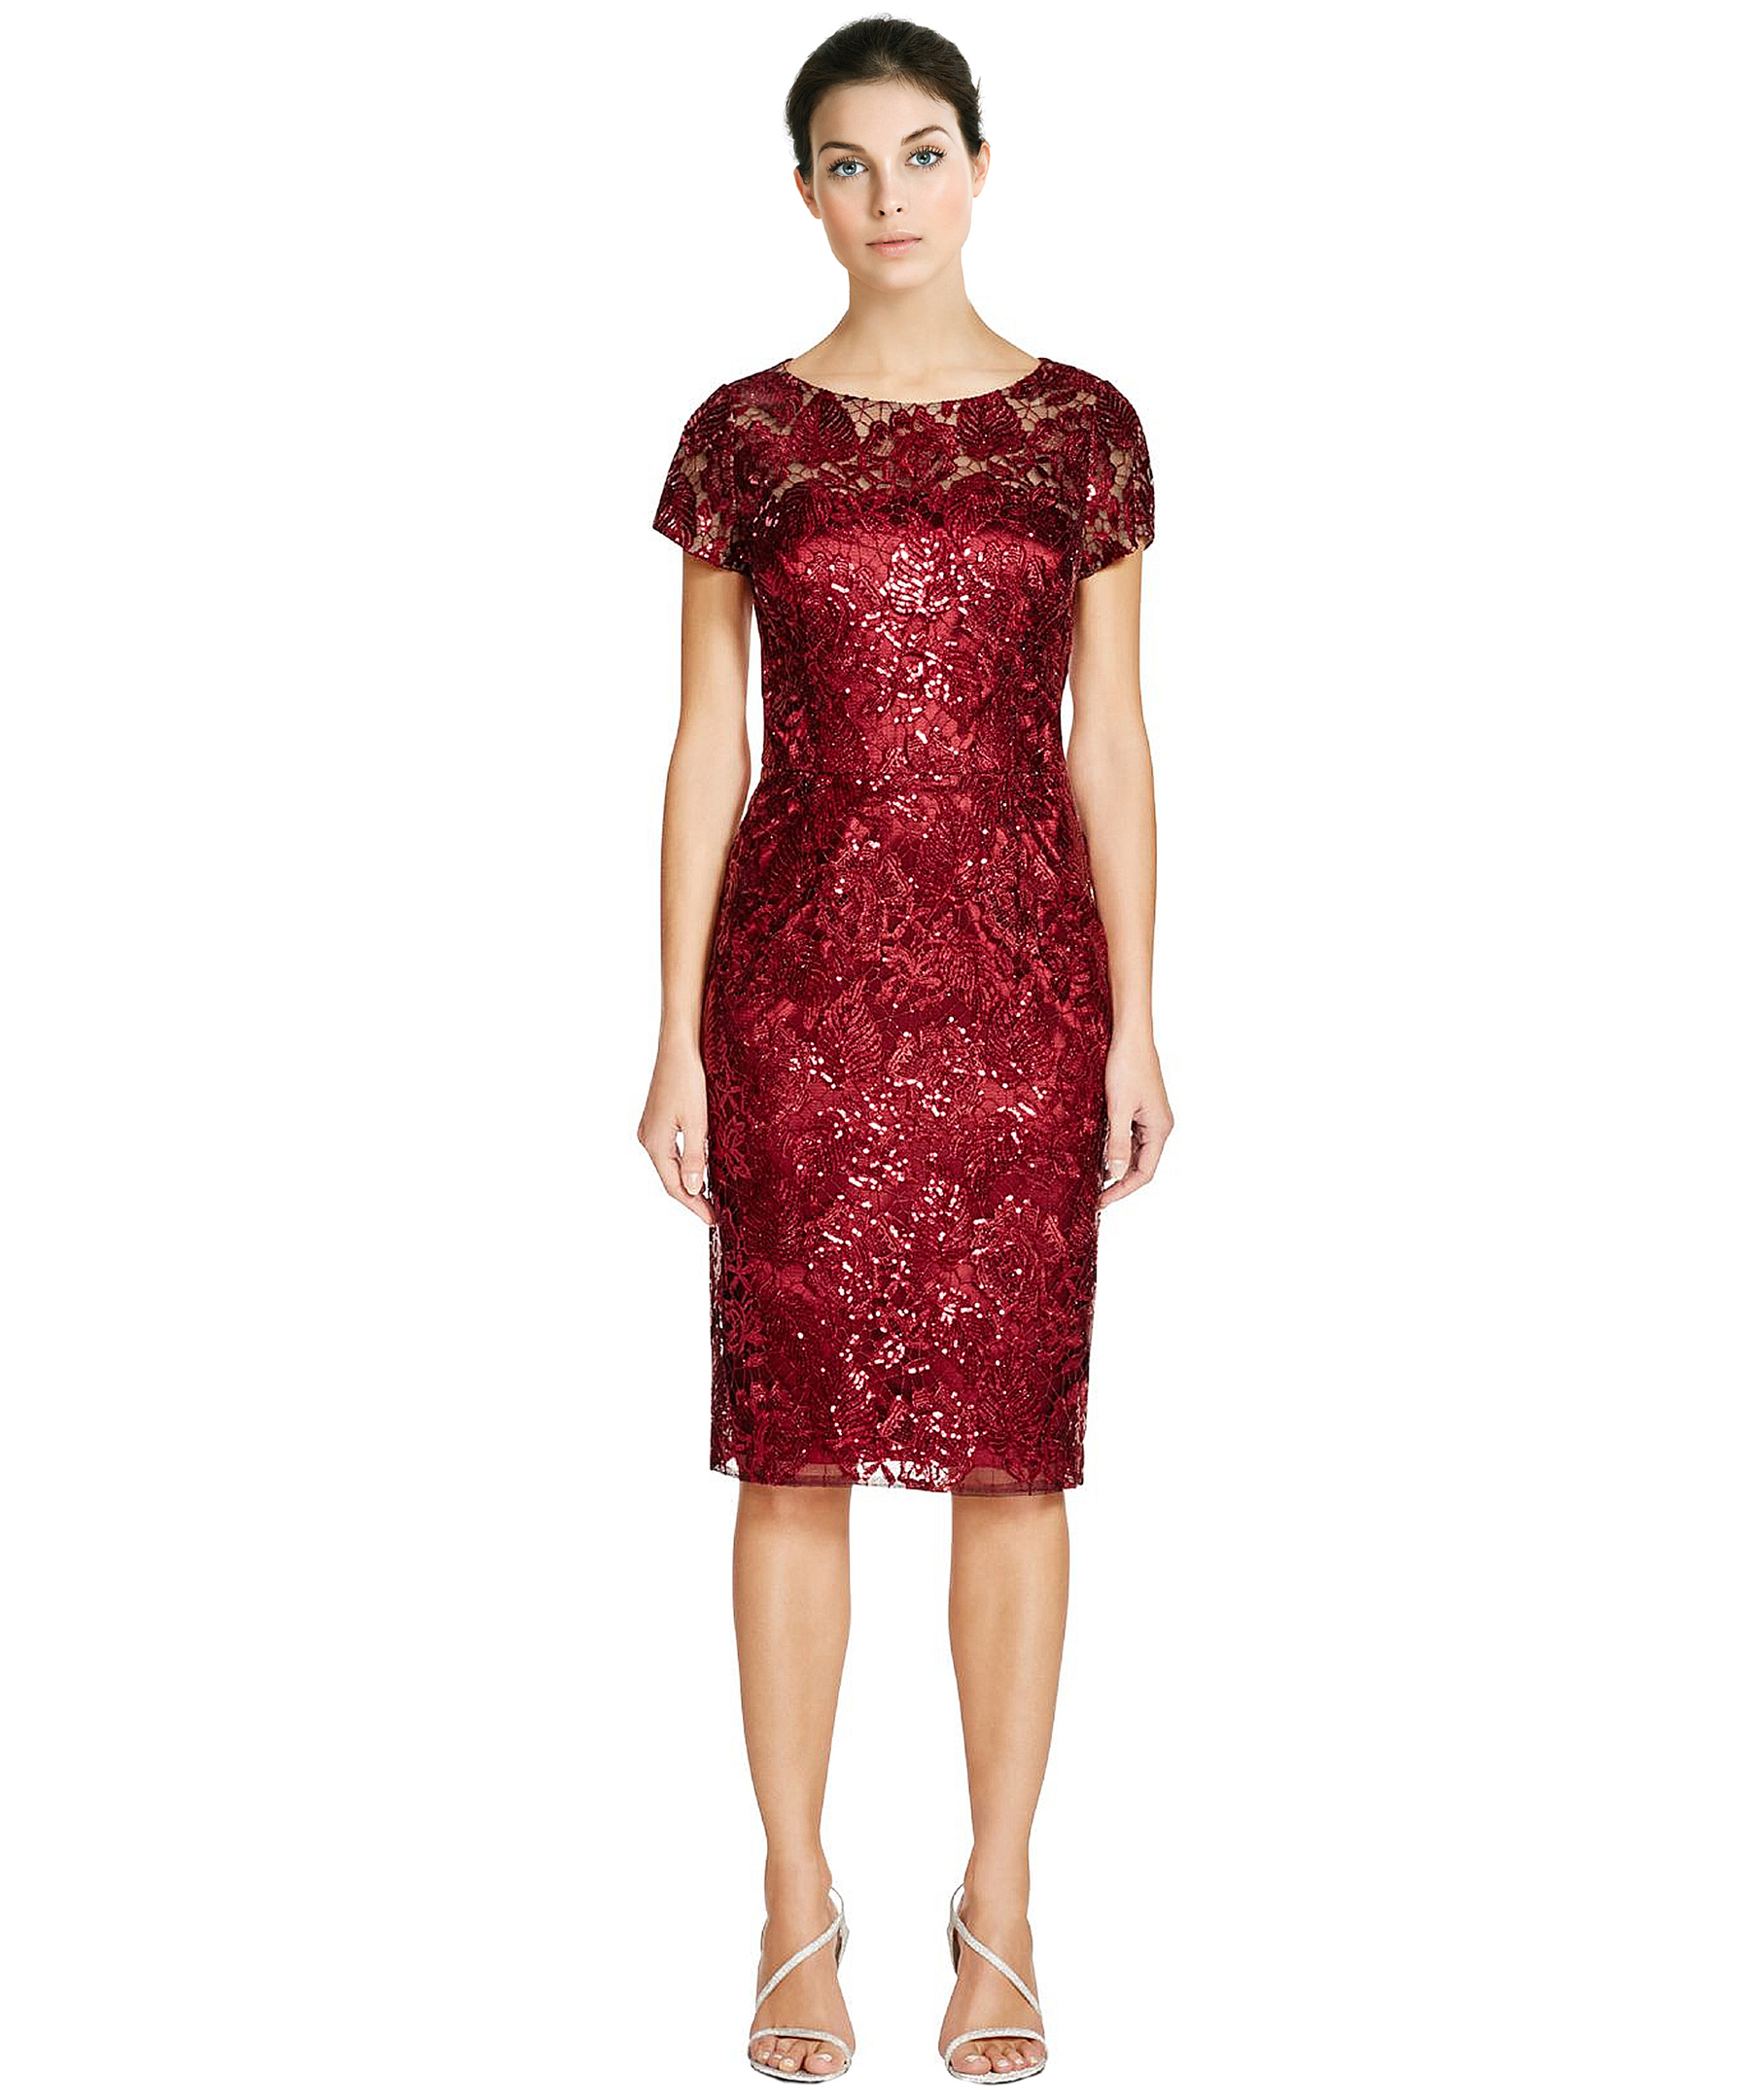 David meister Sequin Lace Short Sleeve Cocktail Dress in Red   Lyst